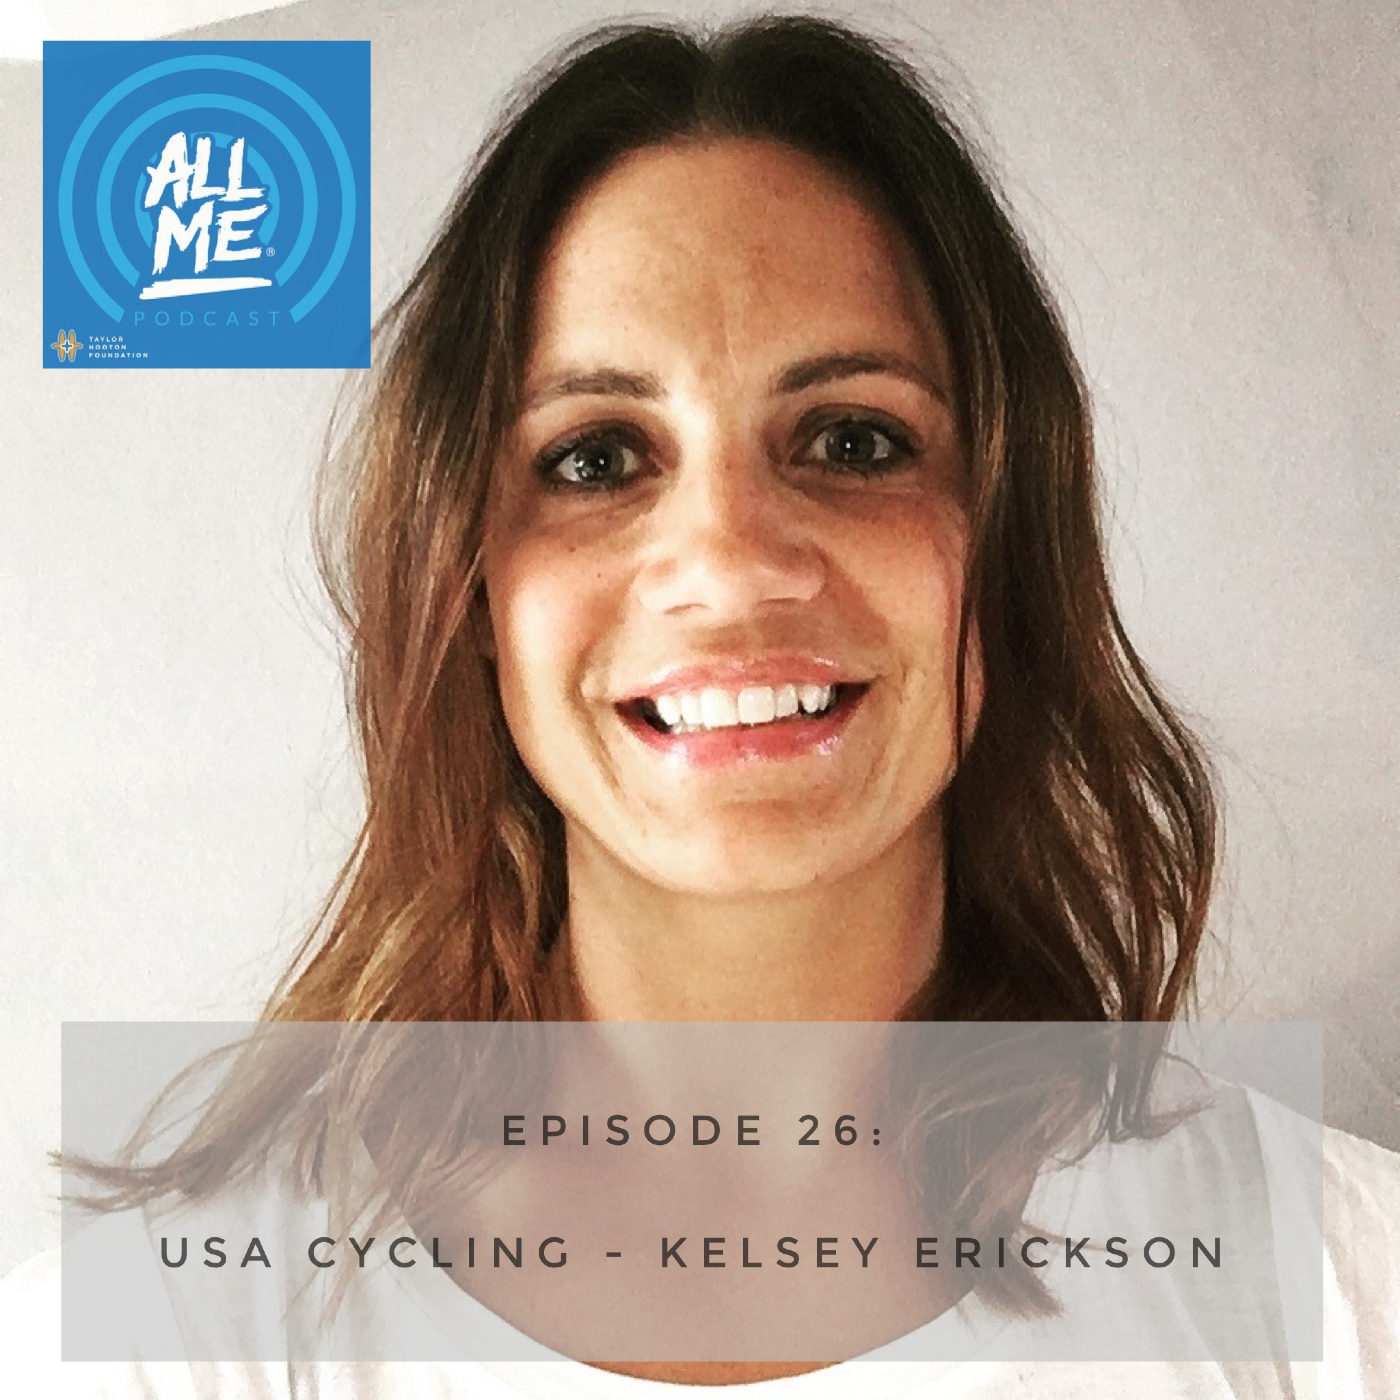 Episode 26: USA Cycling - Dr. Kelsey Erickson